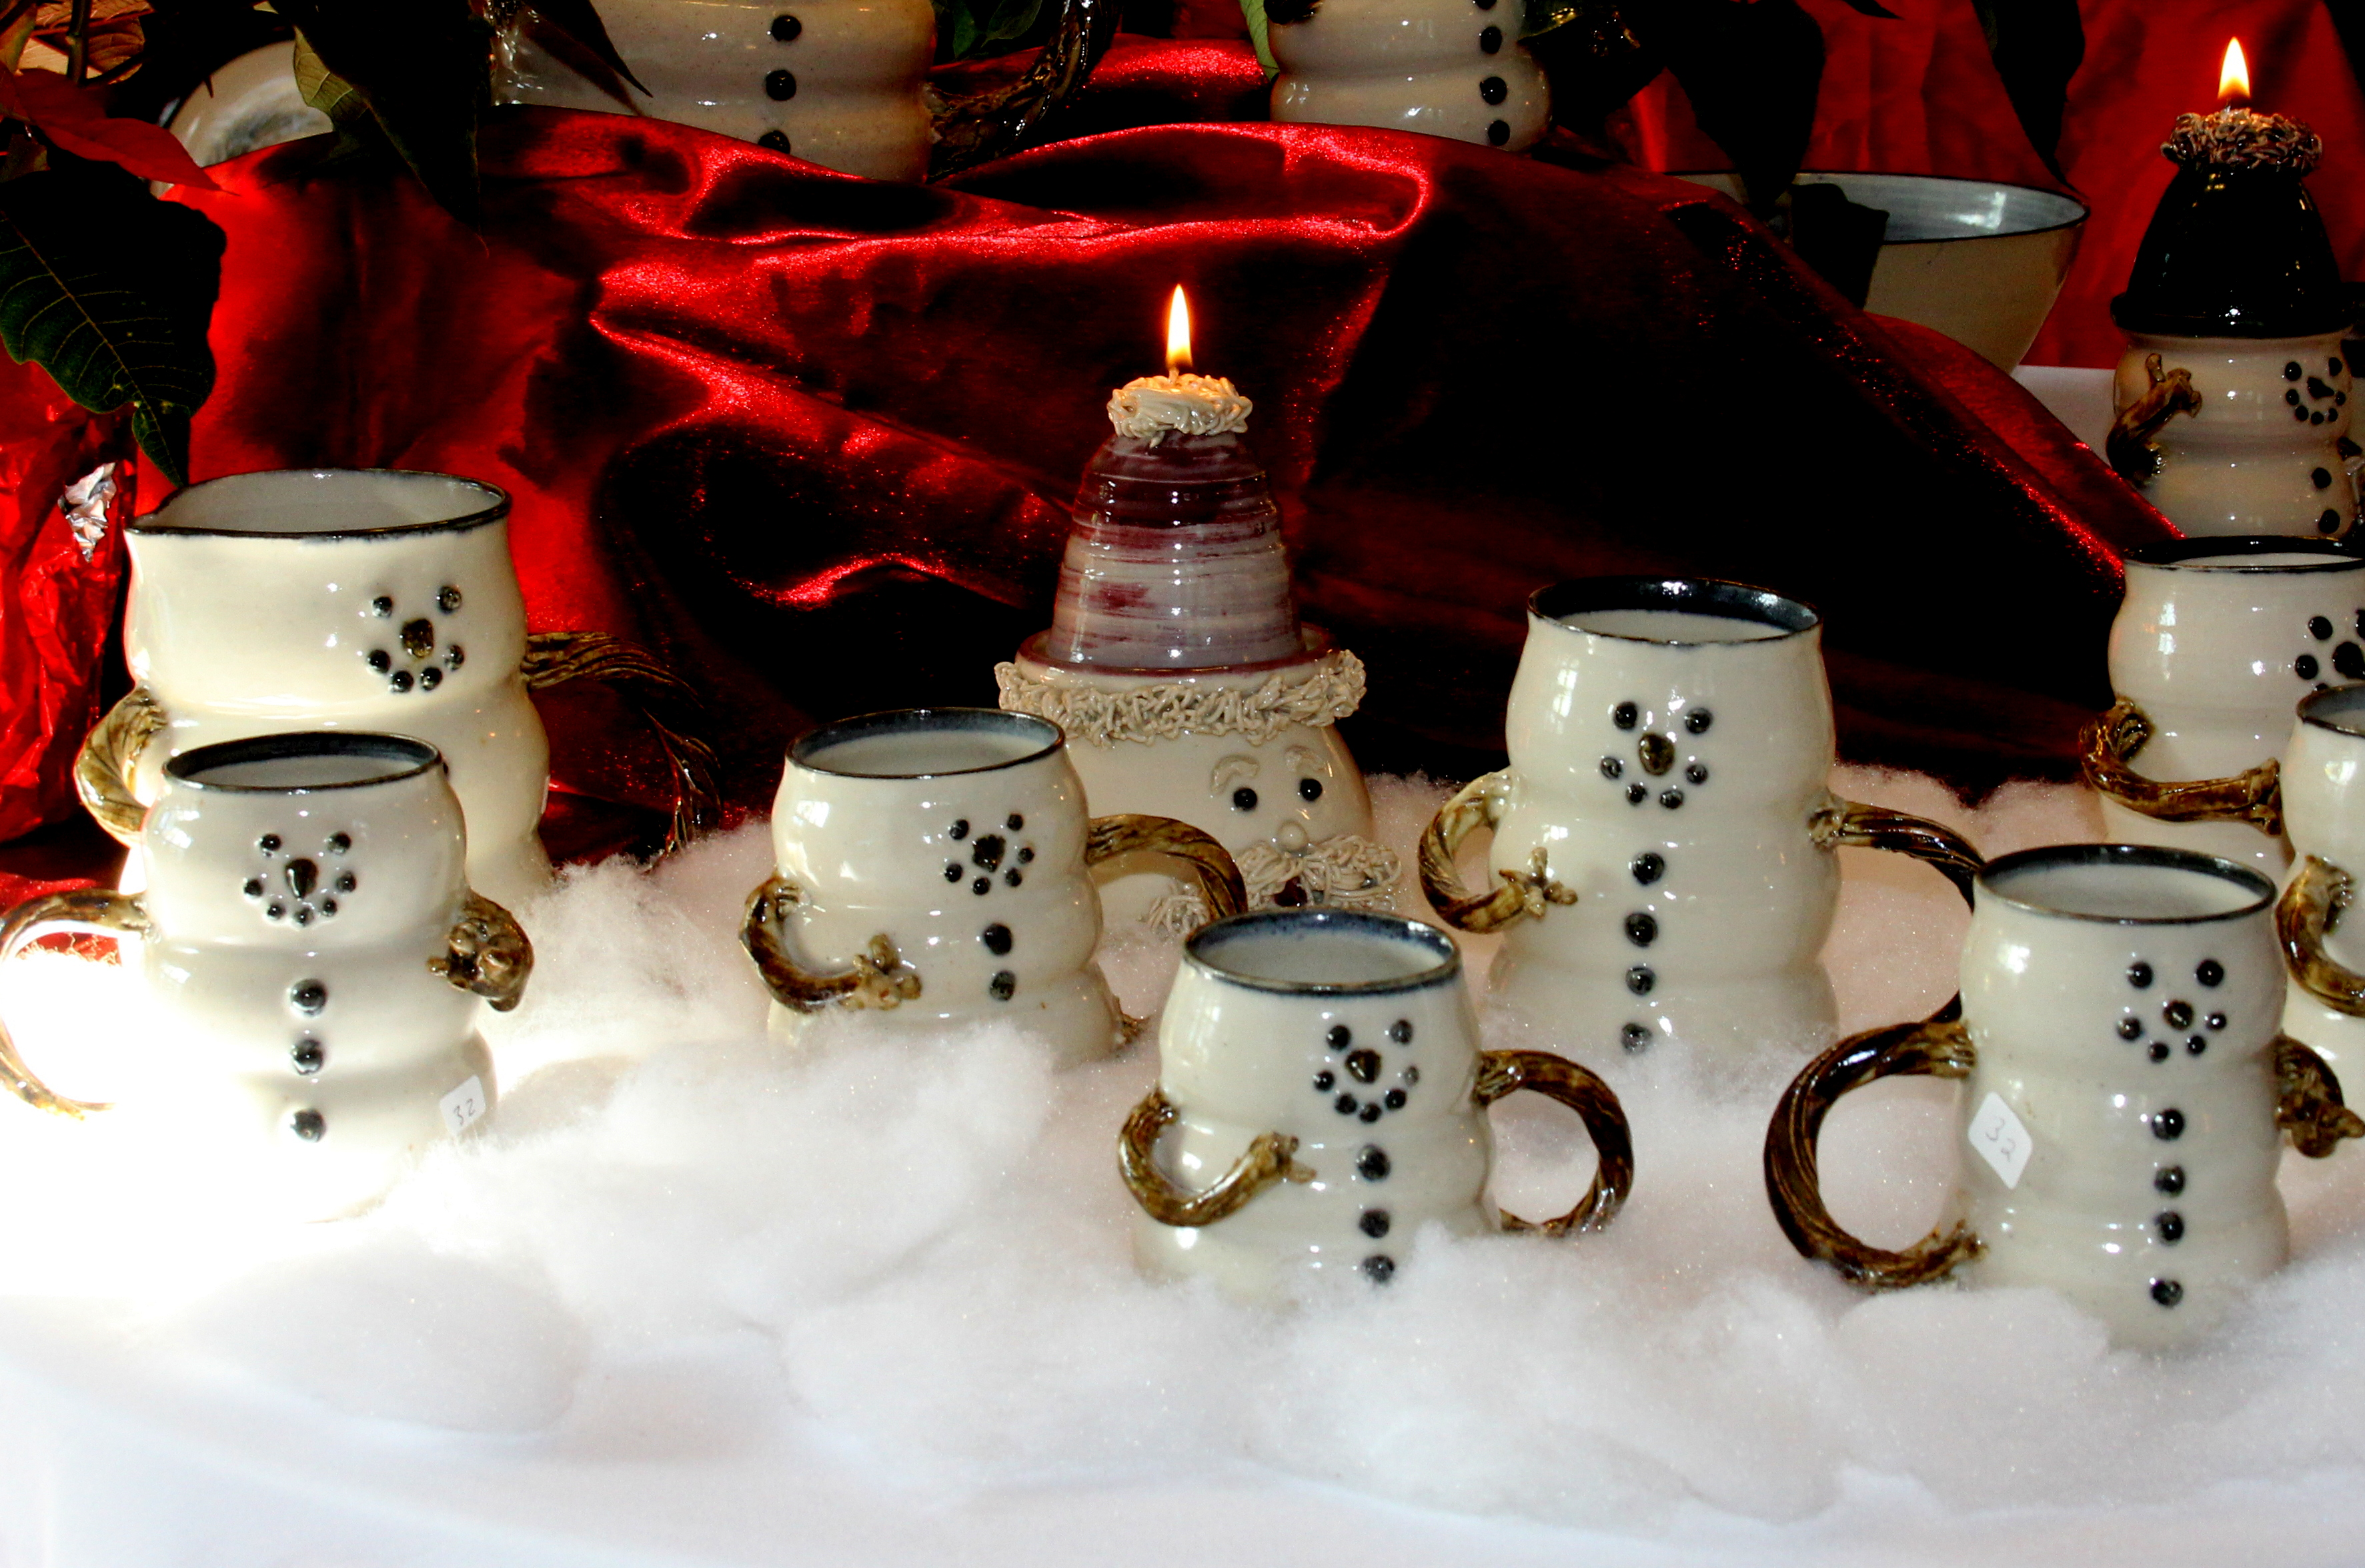 Ceramics and other crafts will be available as part of the annual Holiday Open Studios event in and around the Elmwood Village on Dec. 2.